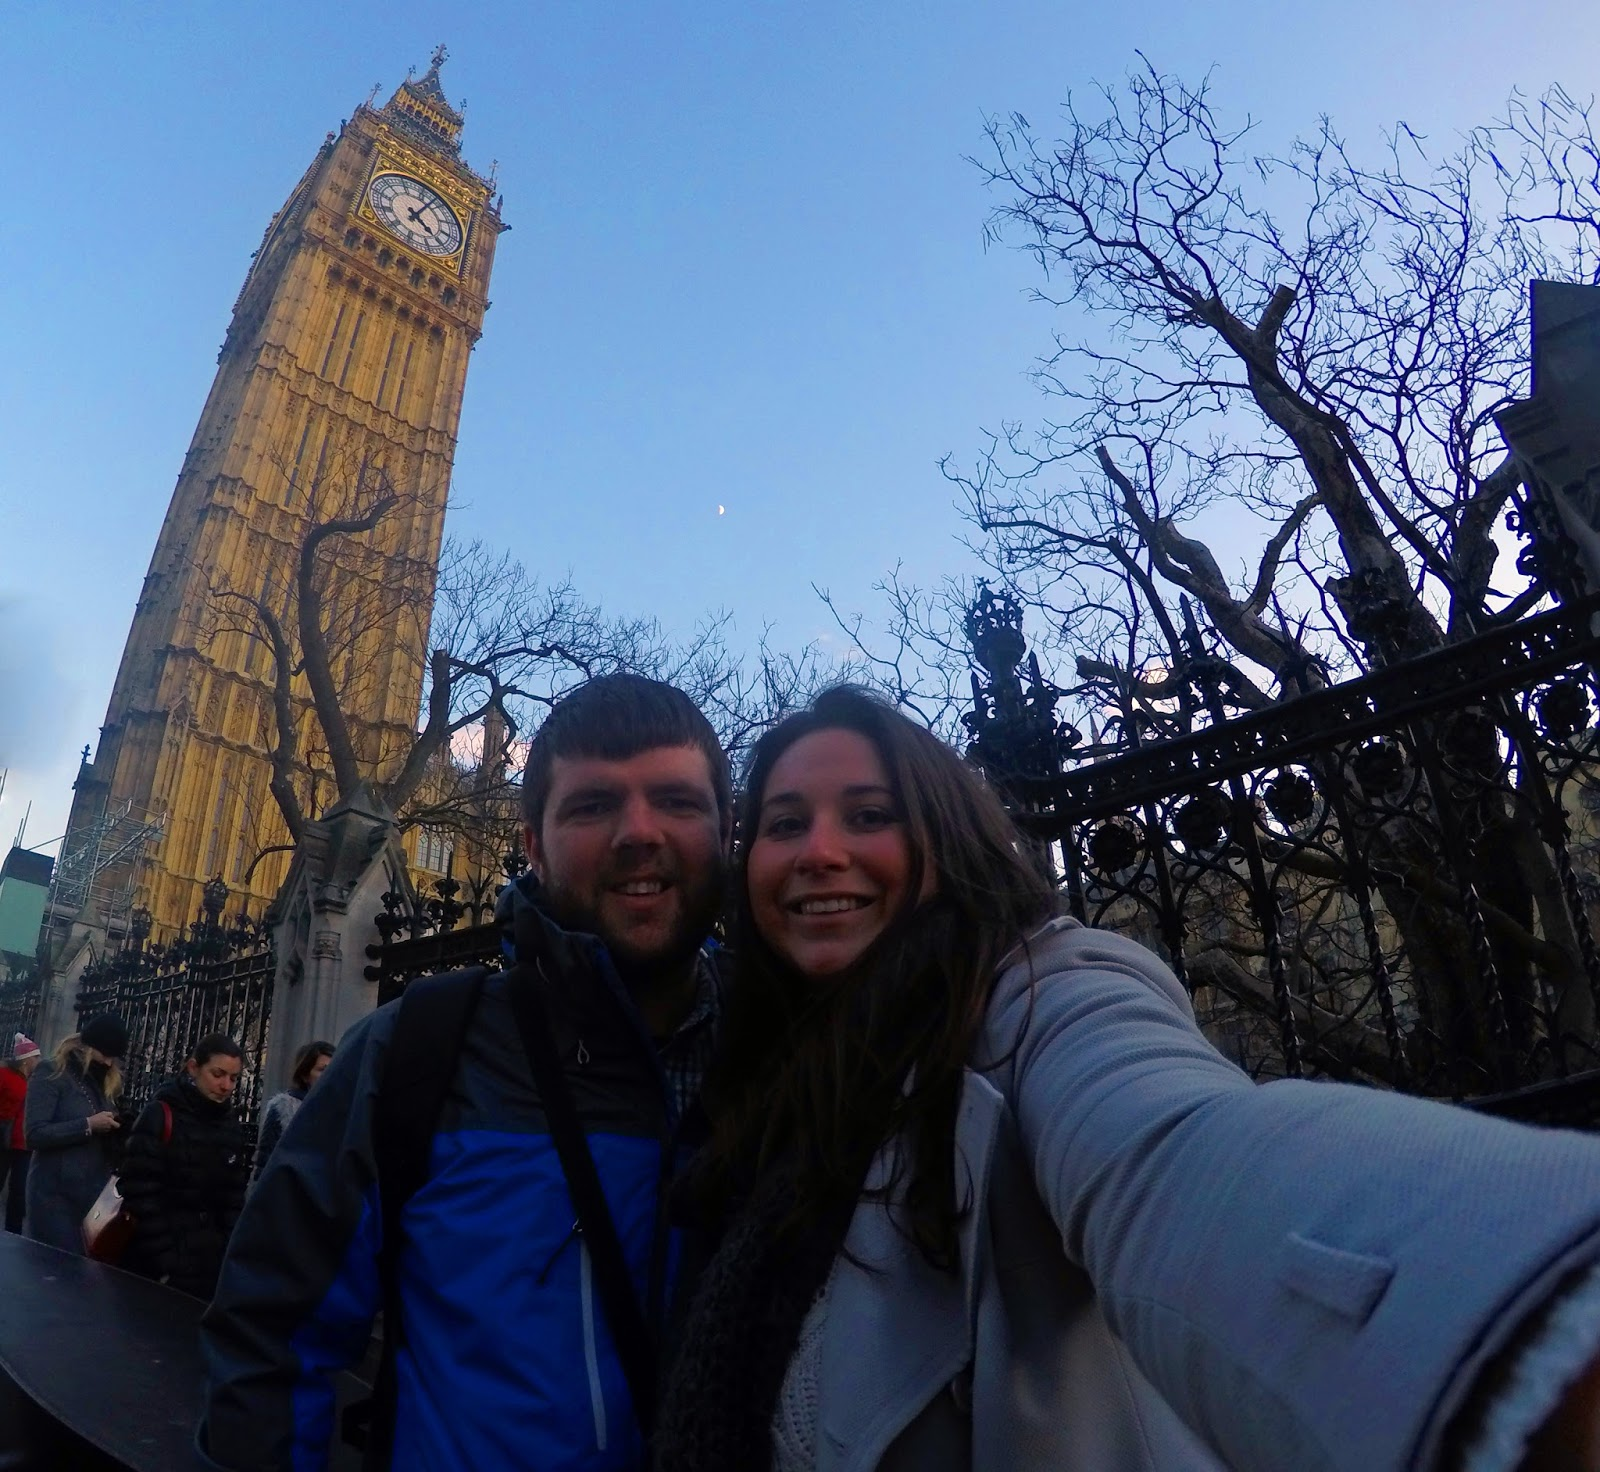 Couple at Big Ben in London